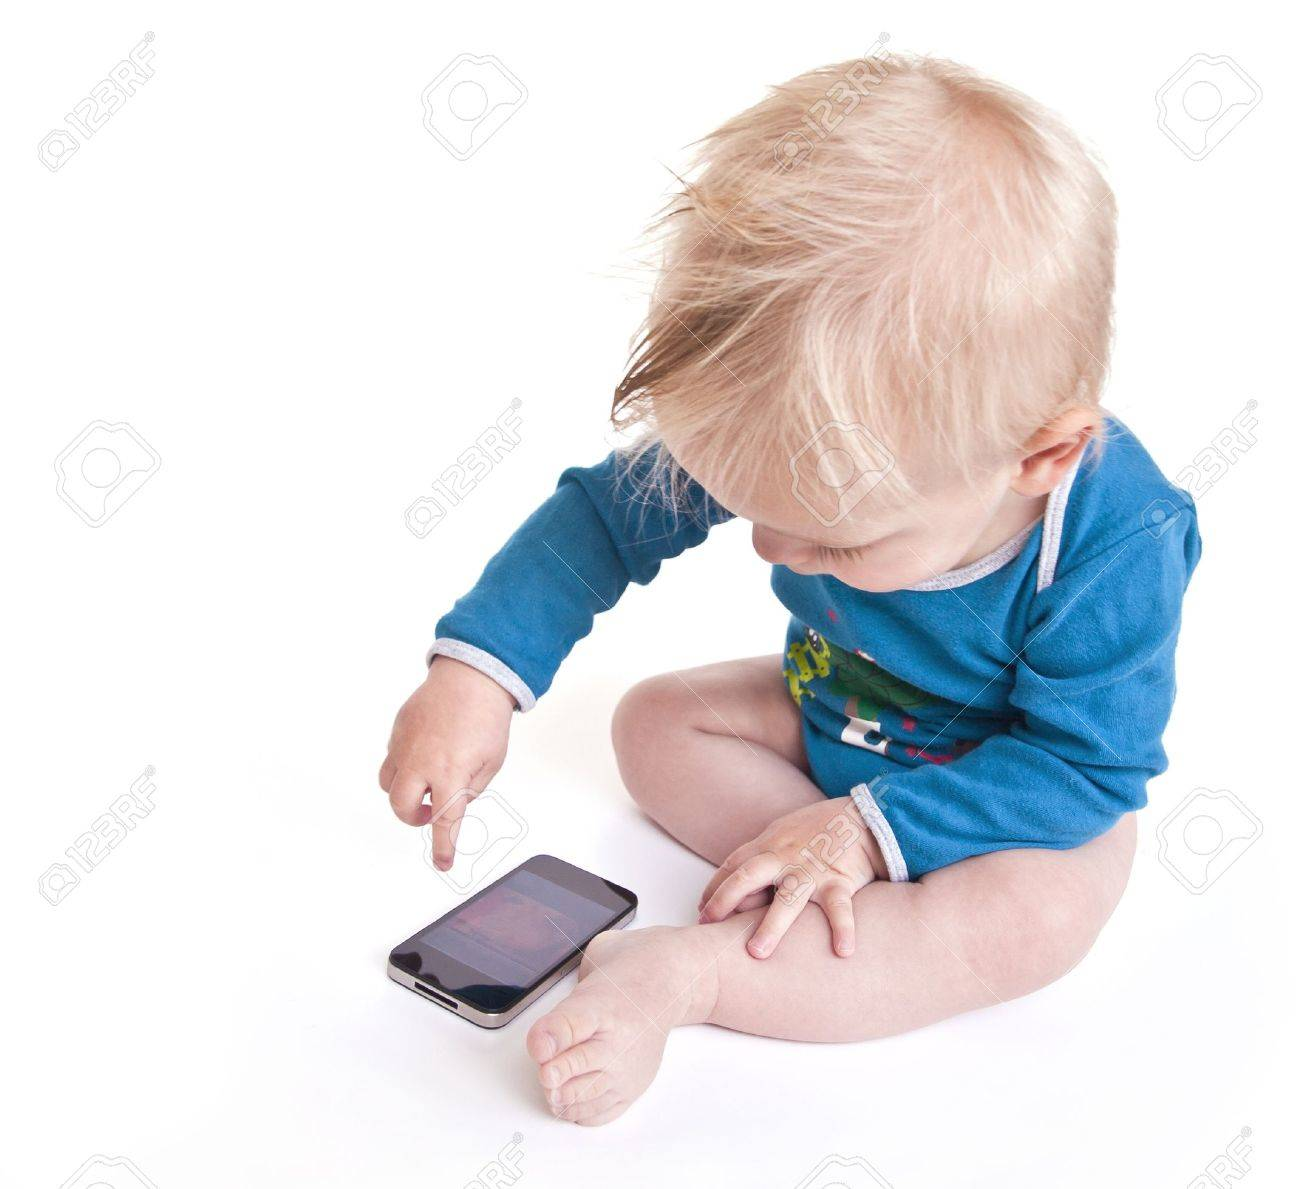 Baby playing with phone Stock Photo - 18574854